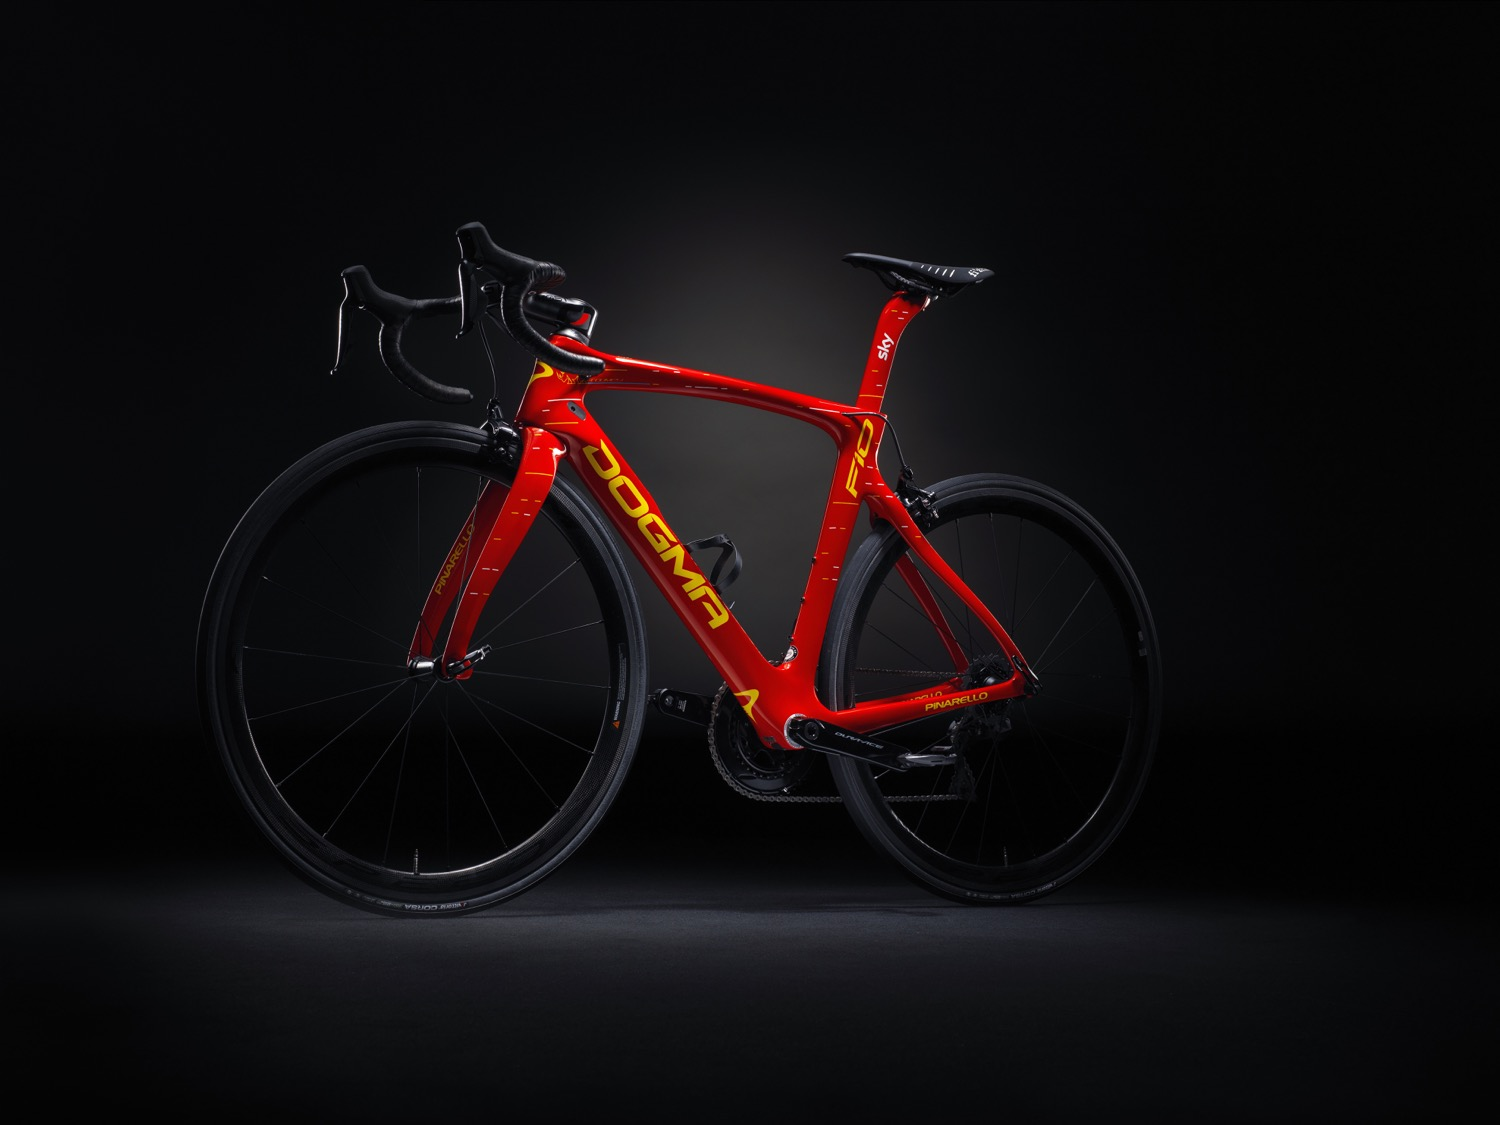 Pinarello Dogma F10 King of Spain